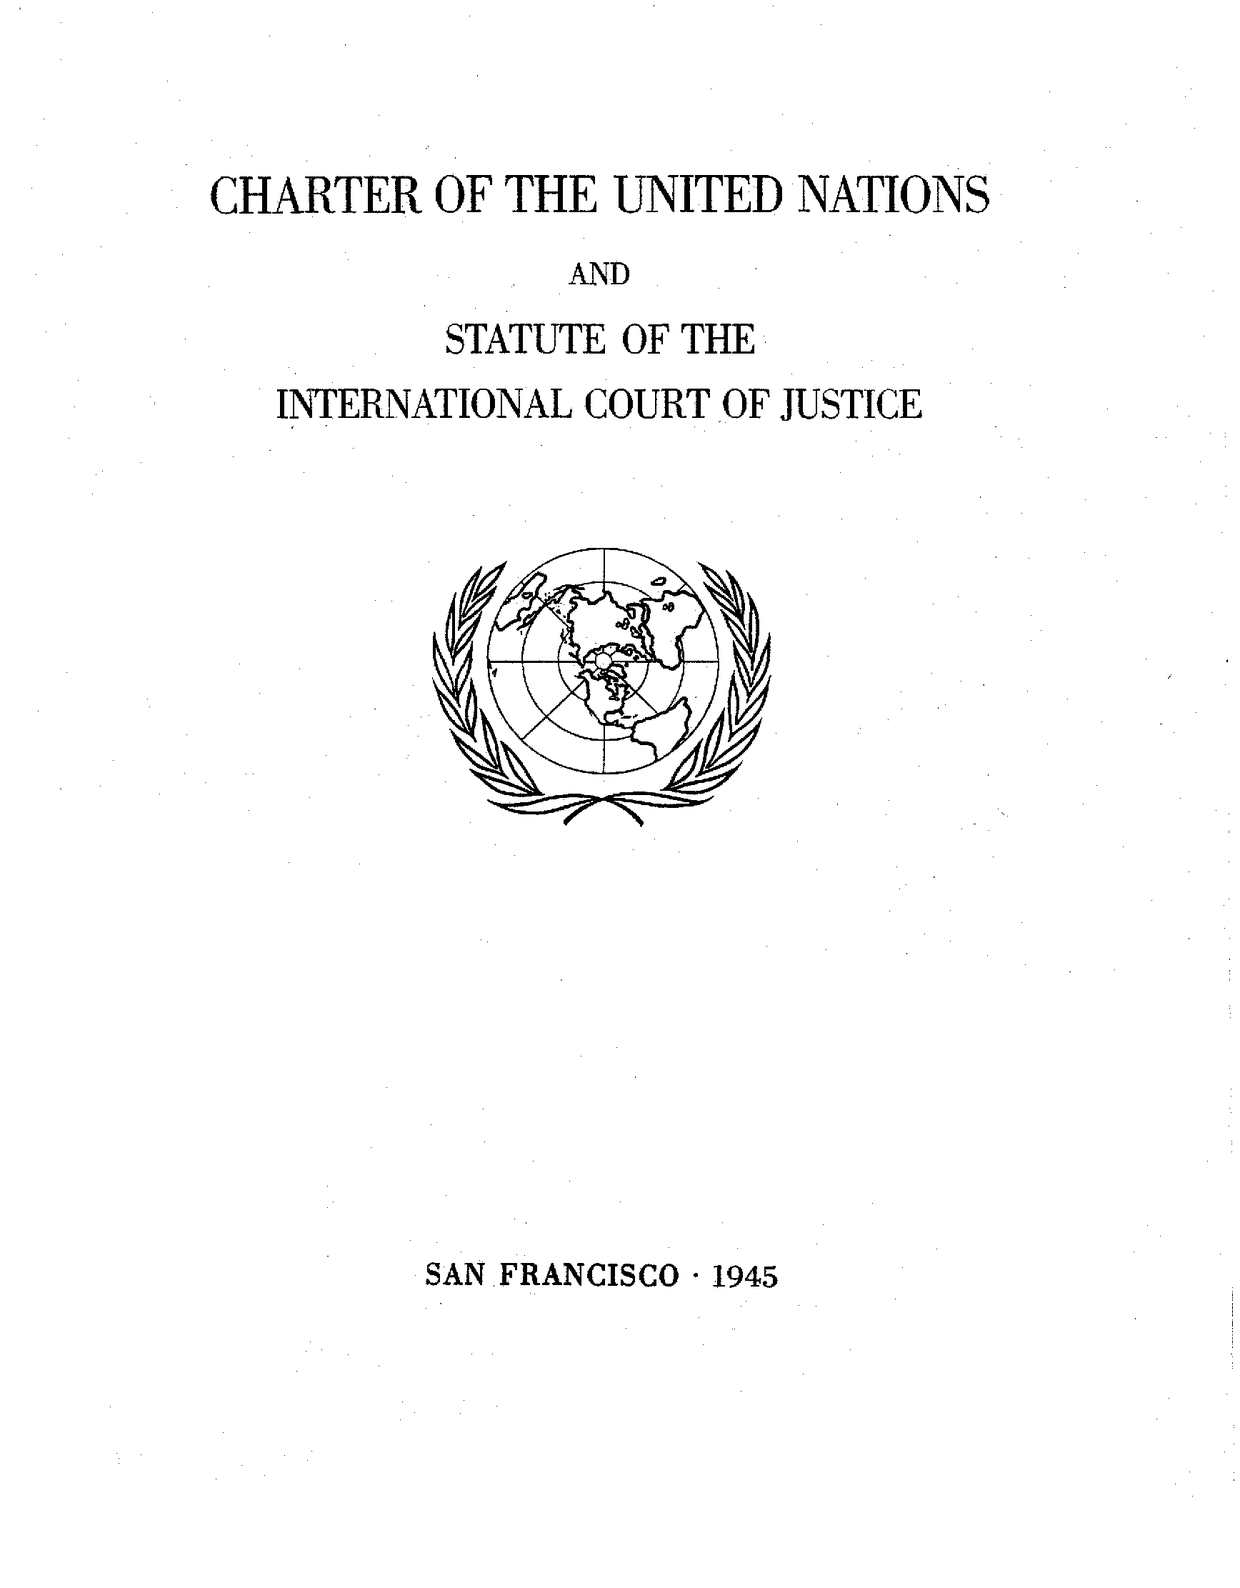 the strengths of the icj The icj has passed many landmark judgements, but the execution of its verdicts have often been hindered by the skewed balance of power in the united nations wherein enforcement is subject to veto by permanent members of the security council the international court of justice (icj), the highest.